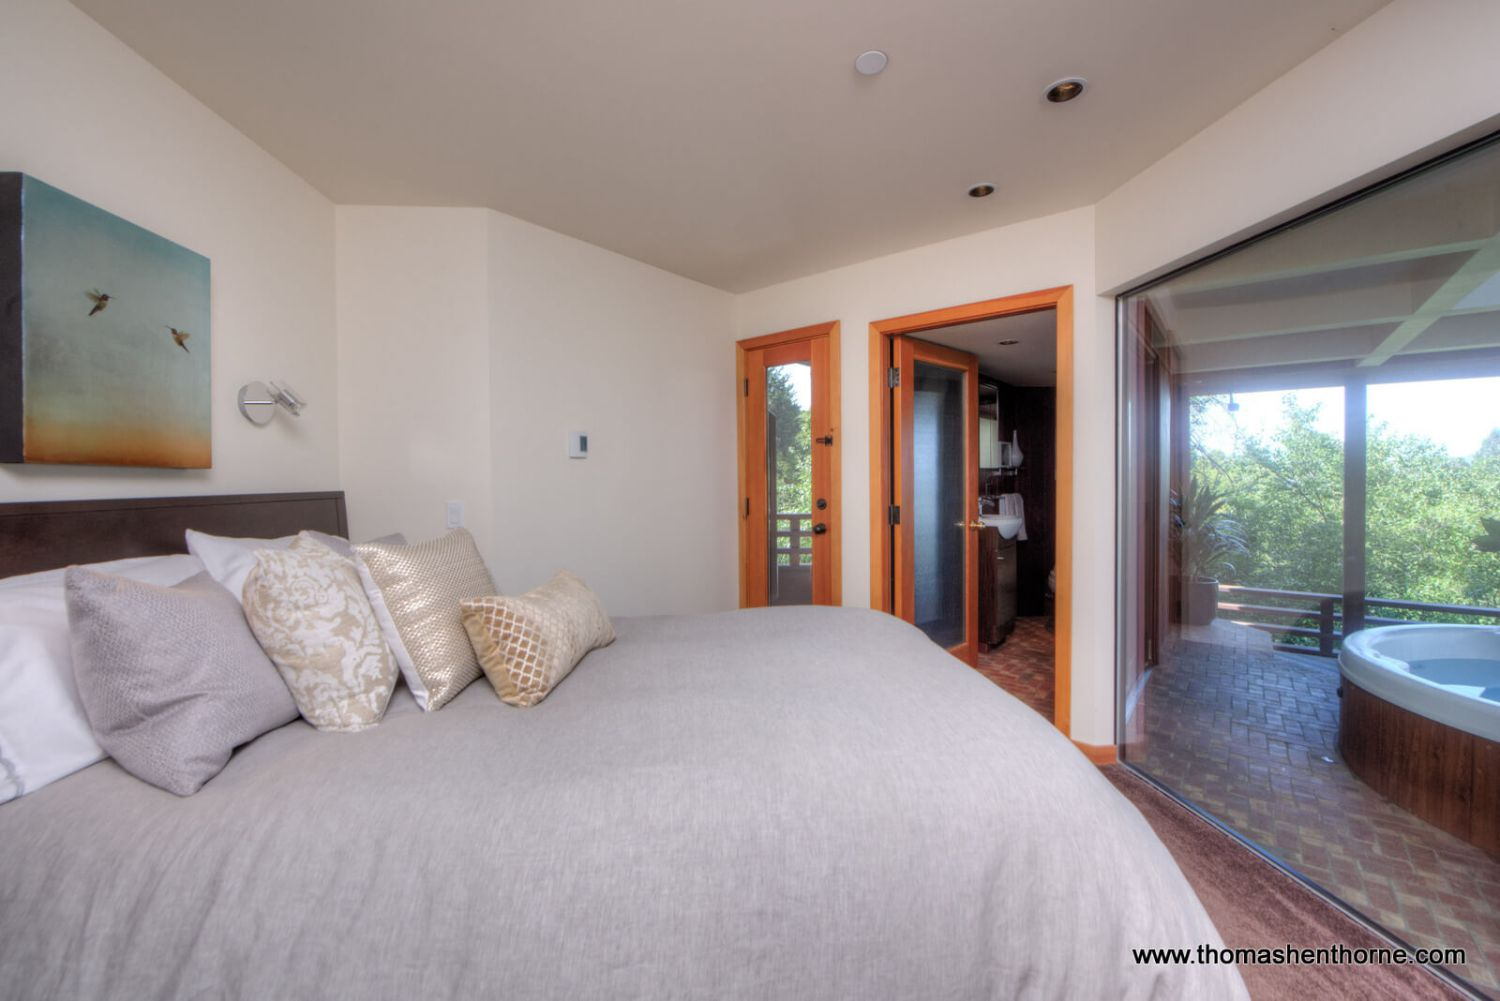 master bedroom photo with hot tub deck at right